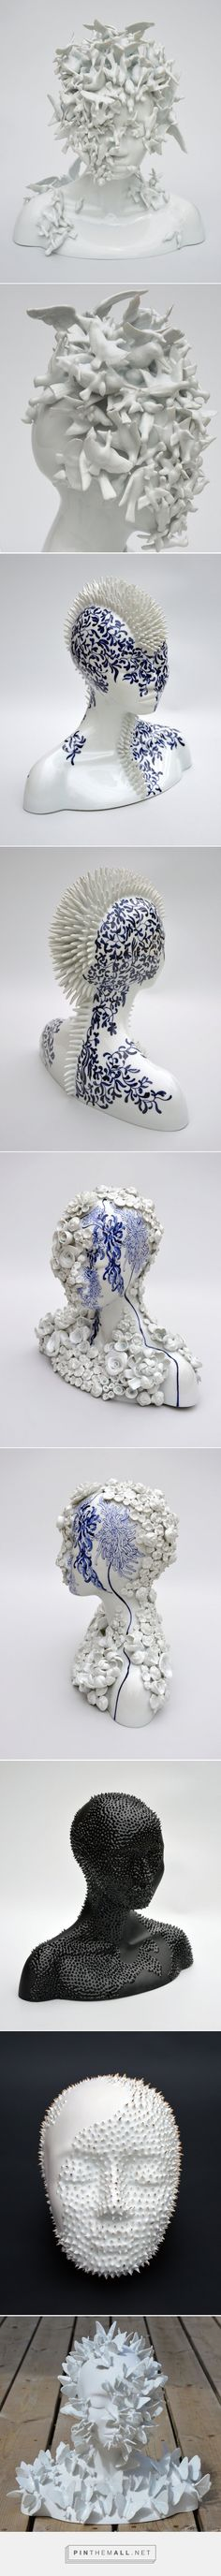 Porcelain Female Forms That Blur the Line Between Humans and Nature by Juliette Clovis | Colossal - created via https://pinthemall.net